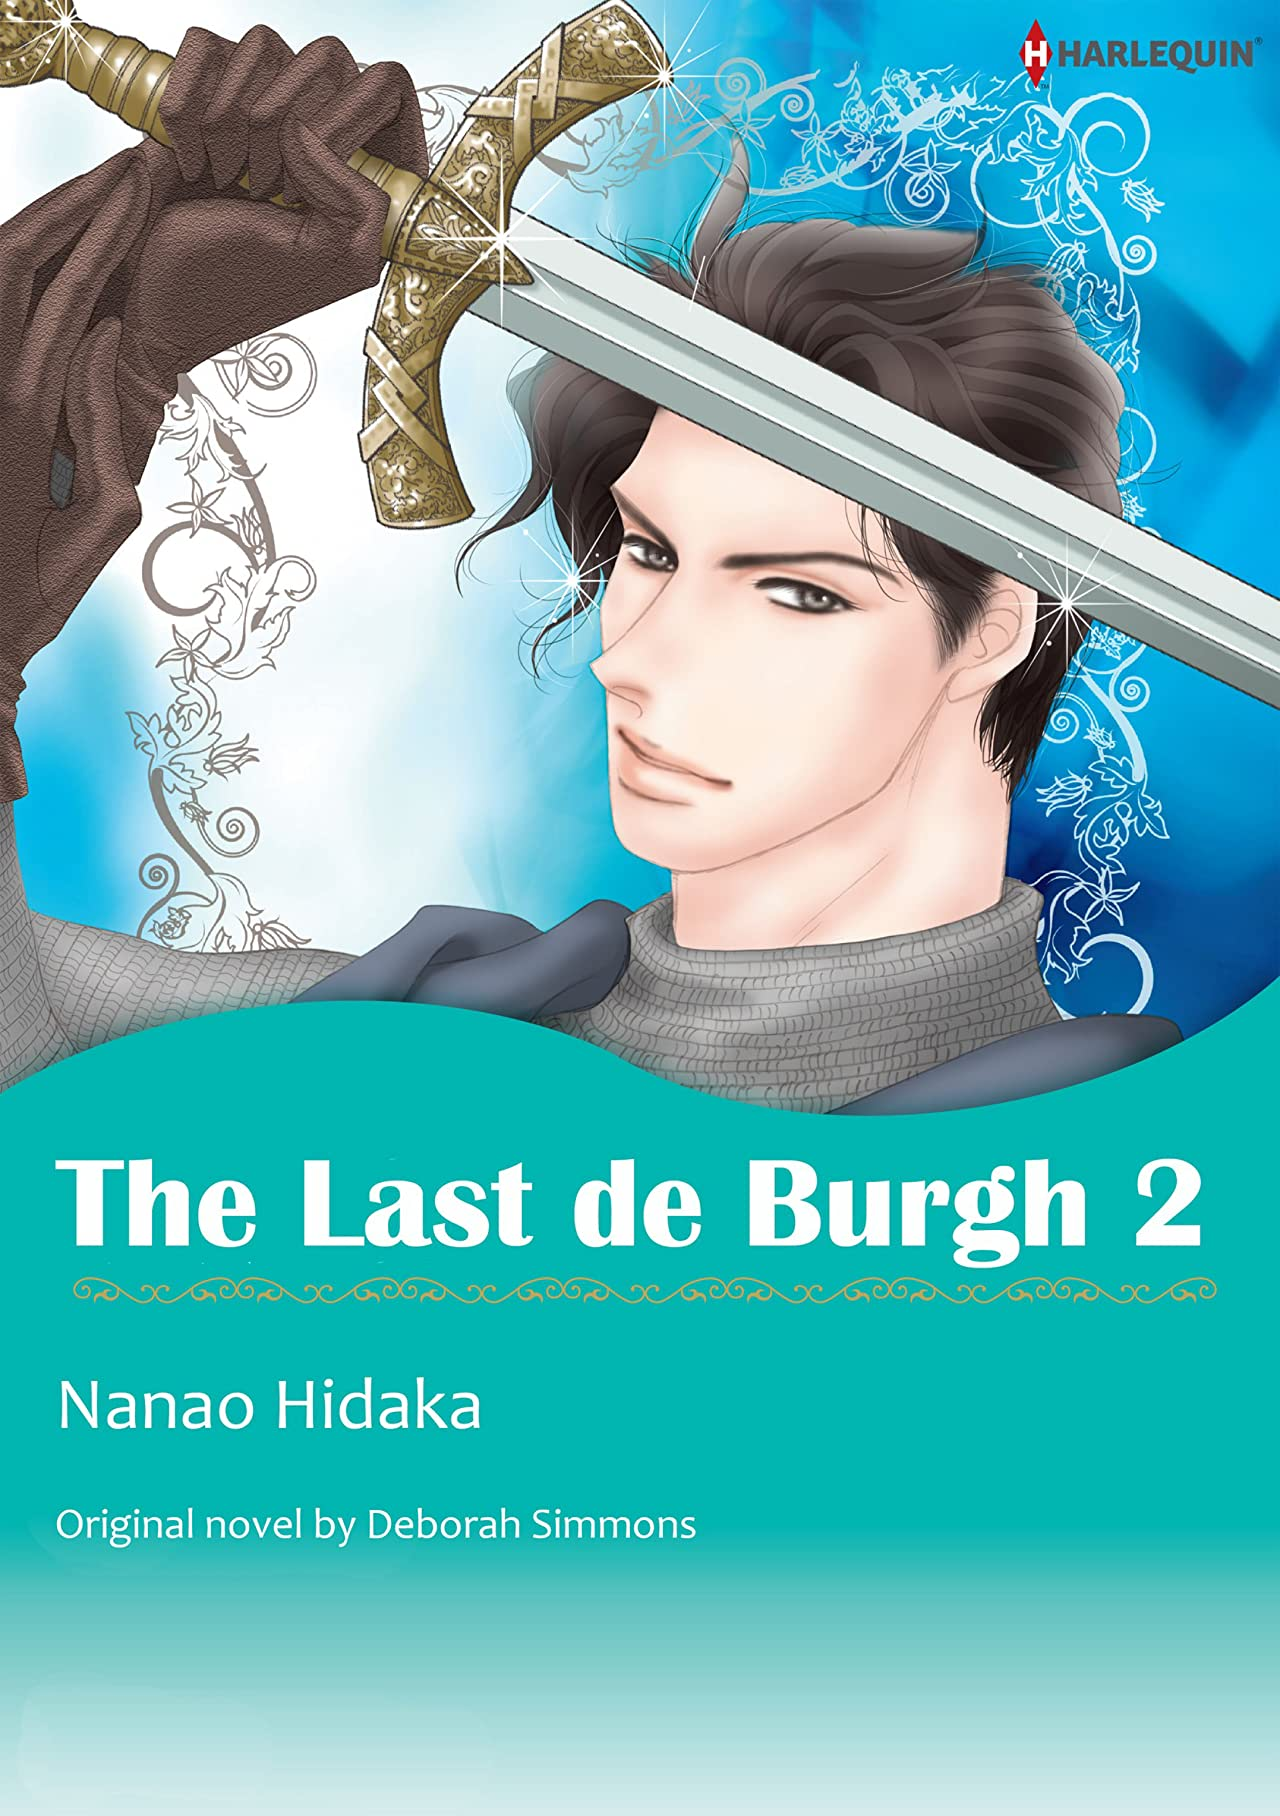 The Last De Burgh Vol. 2